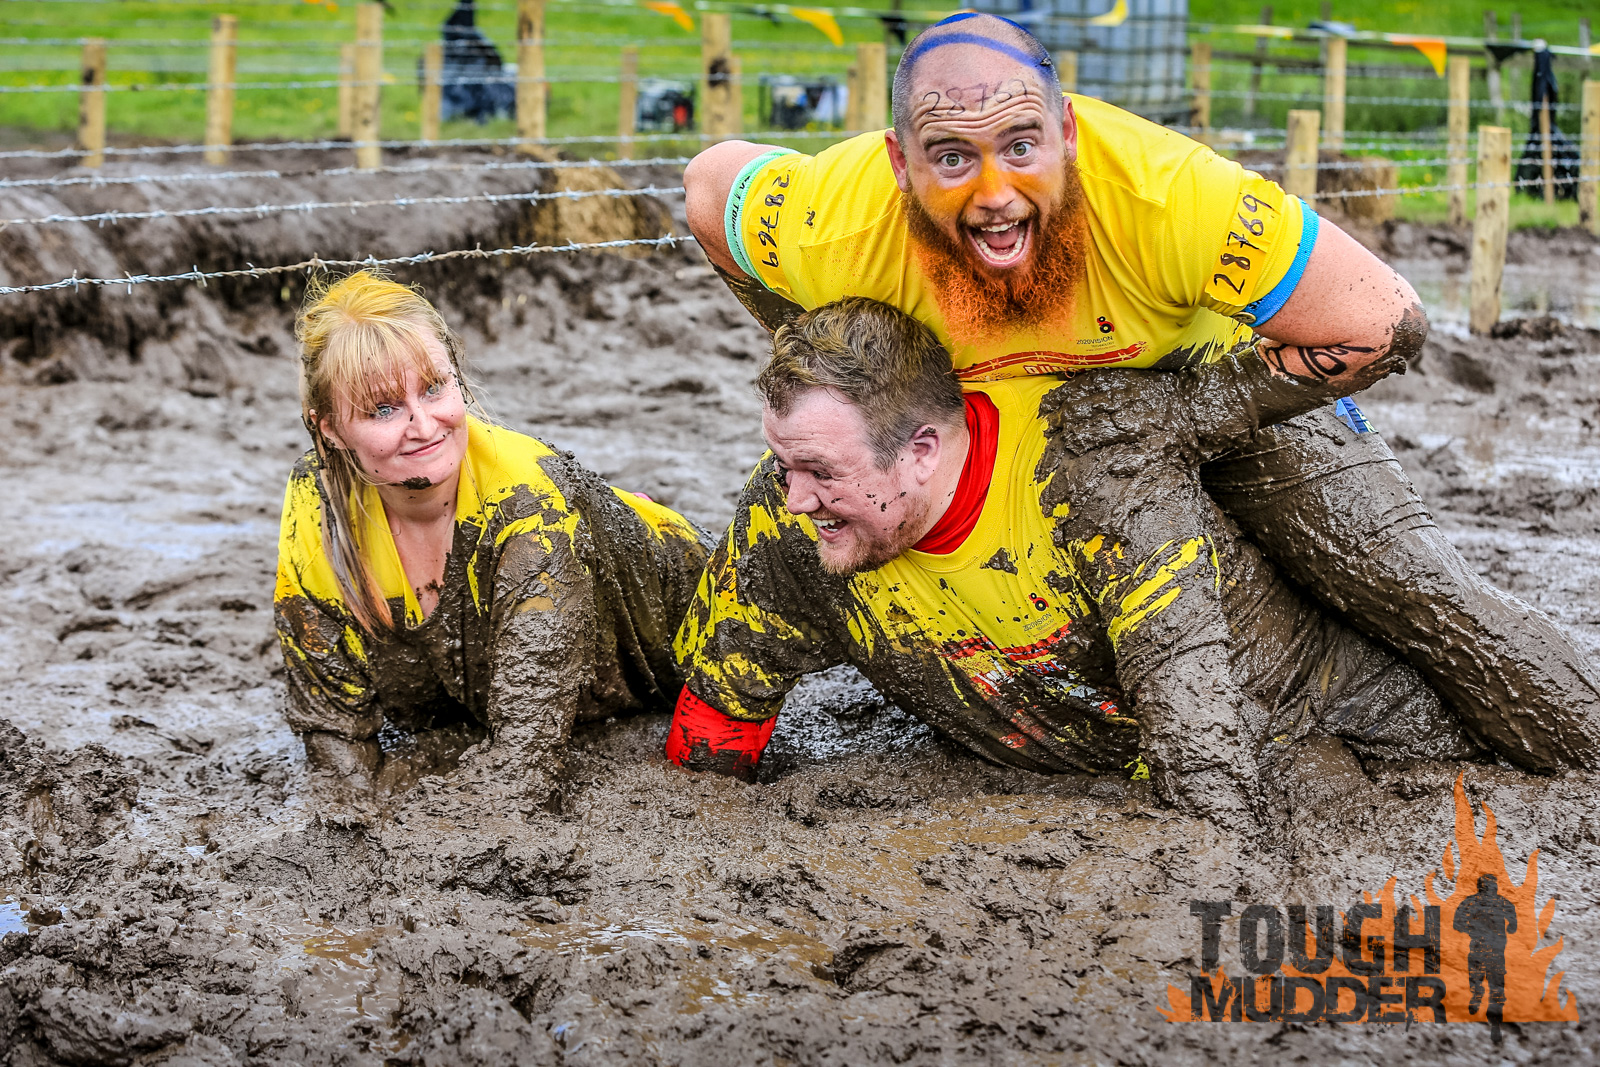 Tough-mudder-2017-sports-photography-edinburgh-glasgow-15.jpg